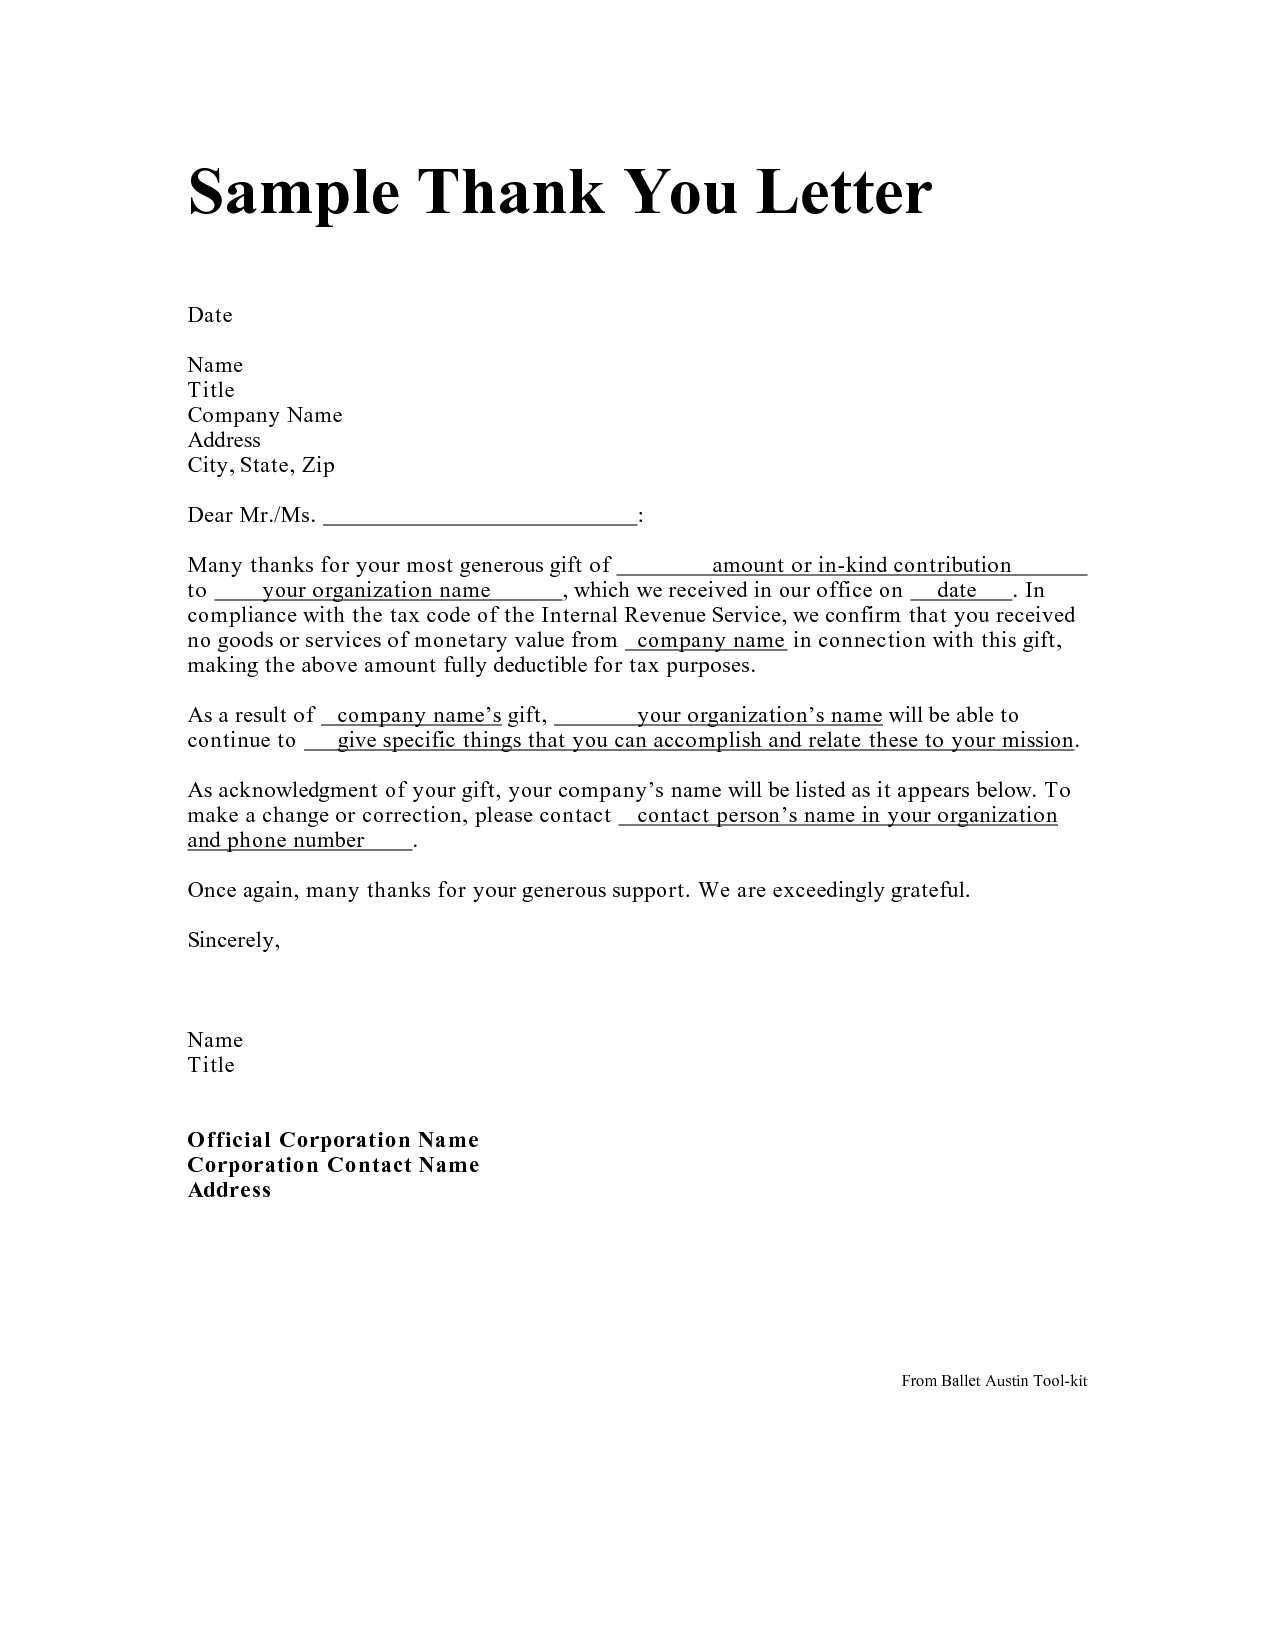 non profit thank you letter template Collection-Personal Thank You Letter Personal Thank You Letter Samples Writing Thank You Notes Thank You Note Examples 7-t